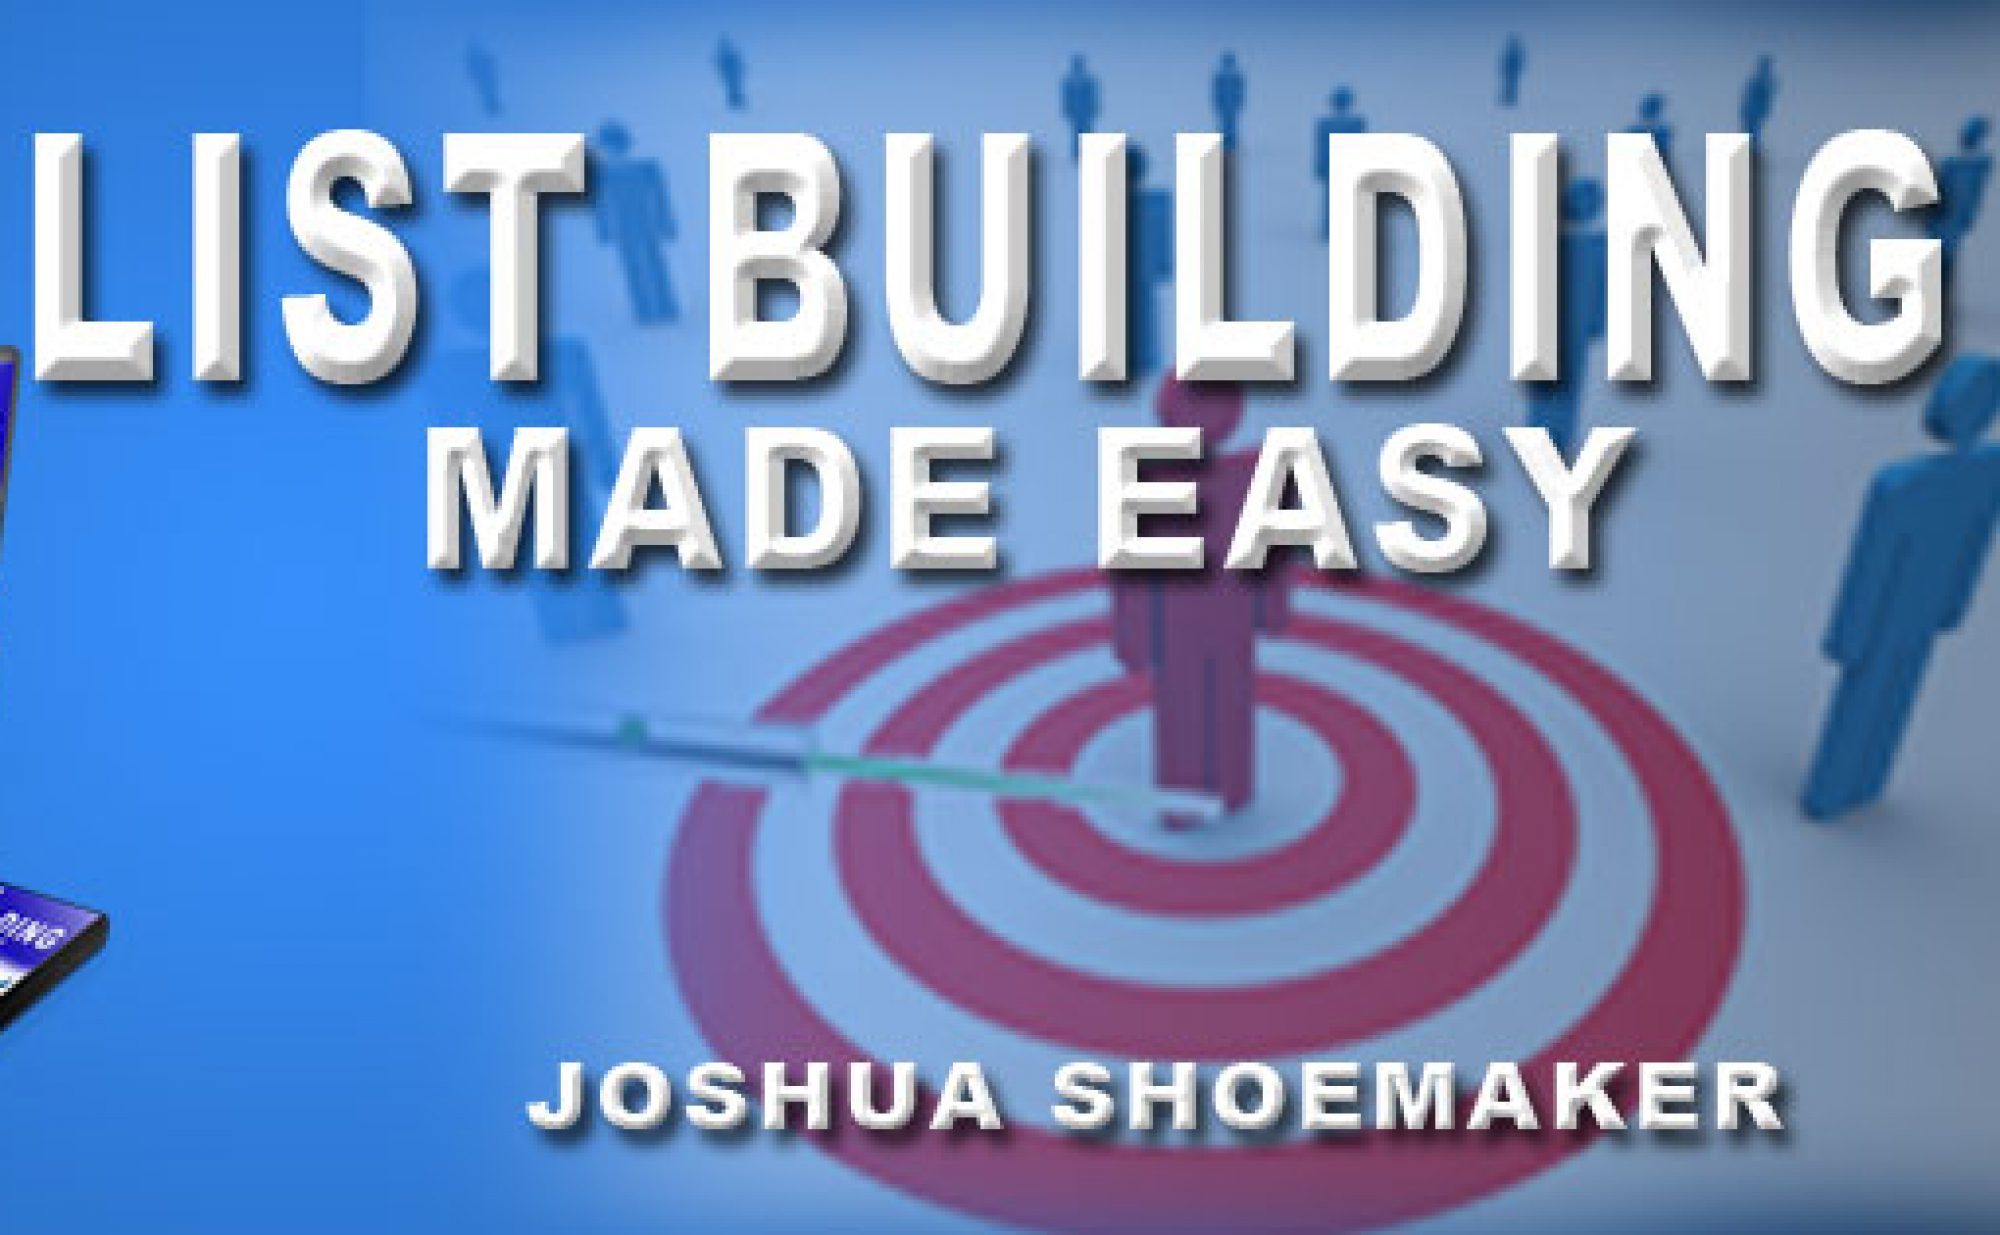 list building made easy